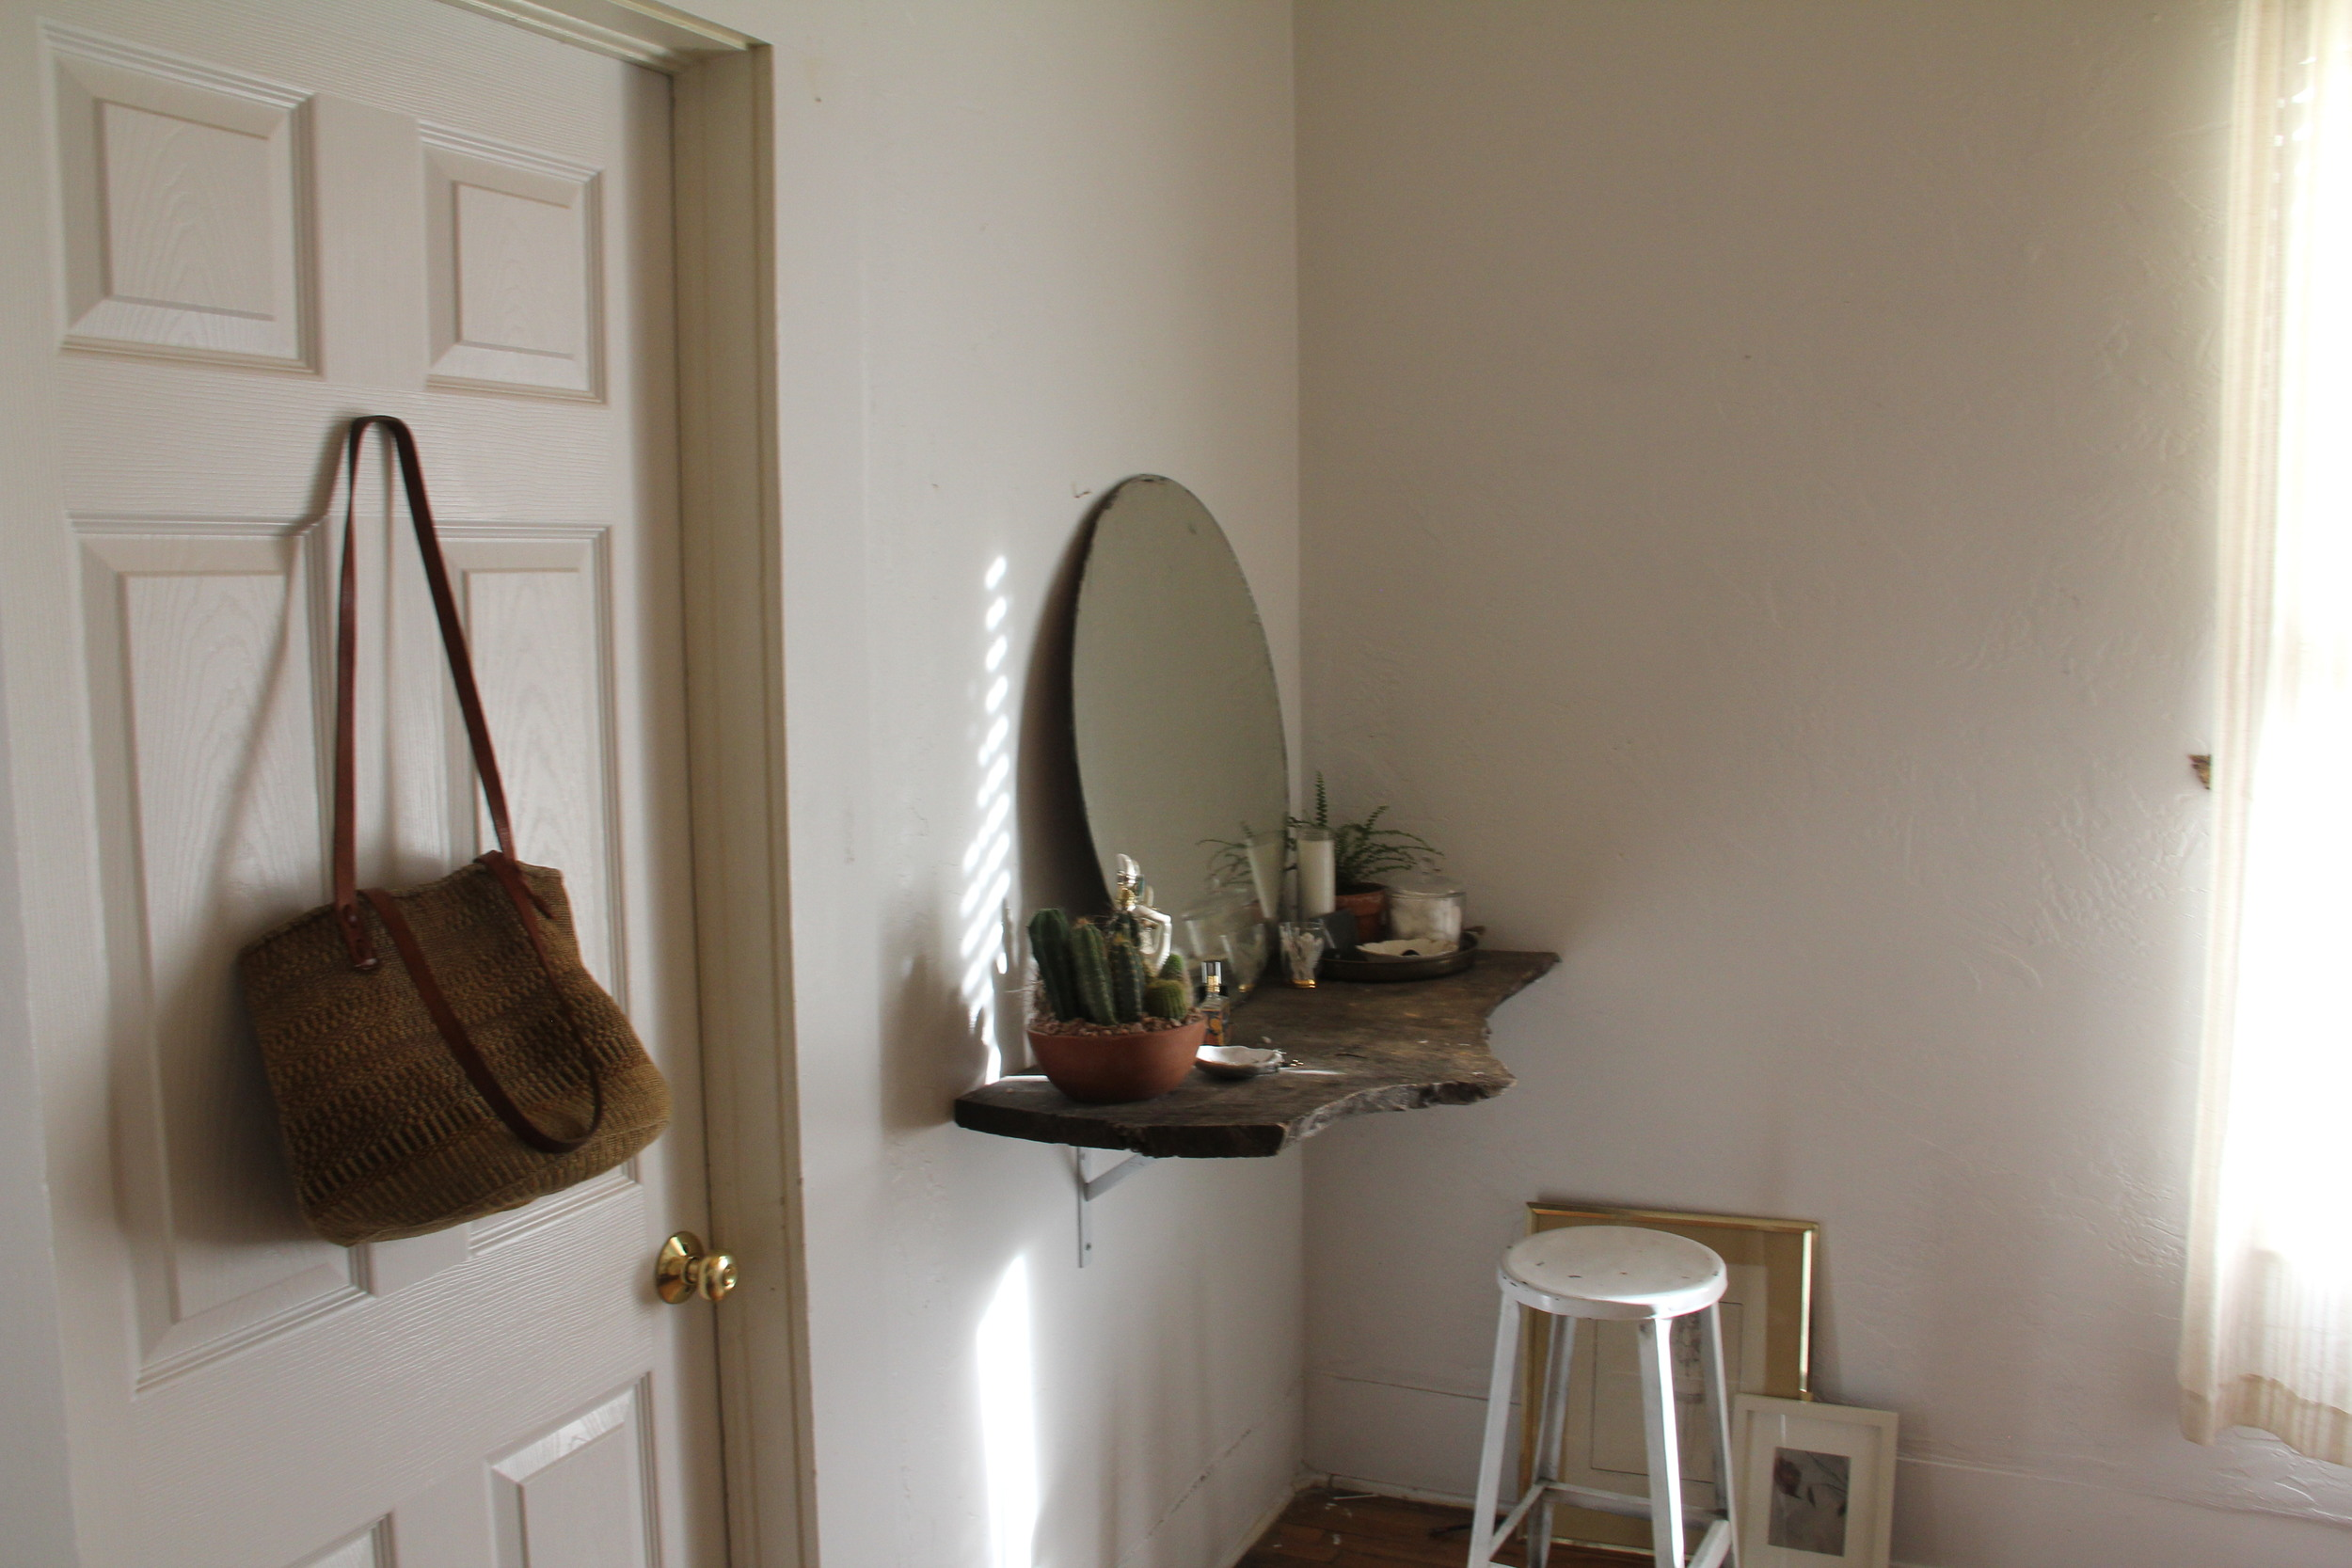 Linen Bedding: H&M | glass water jug: World Market | all other items shown are vintage